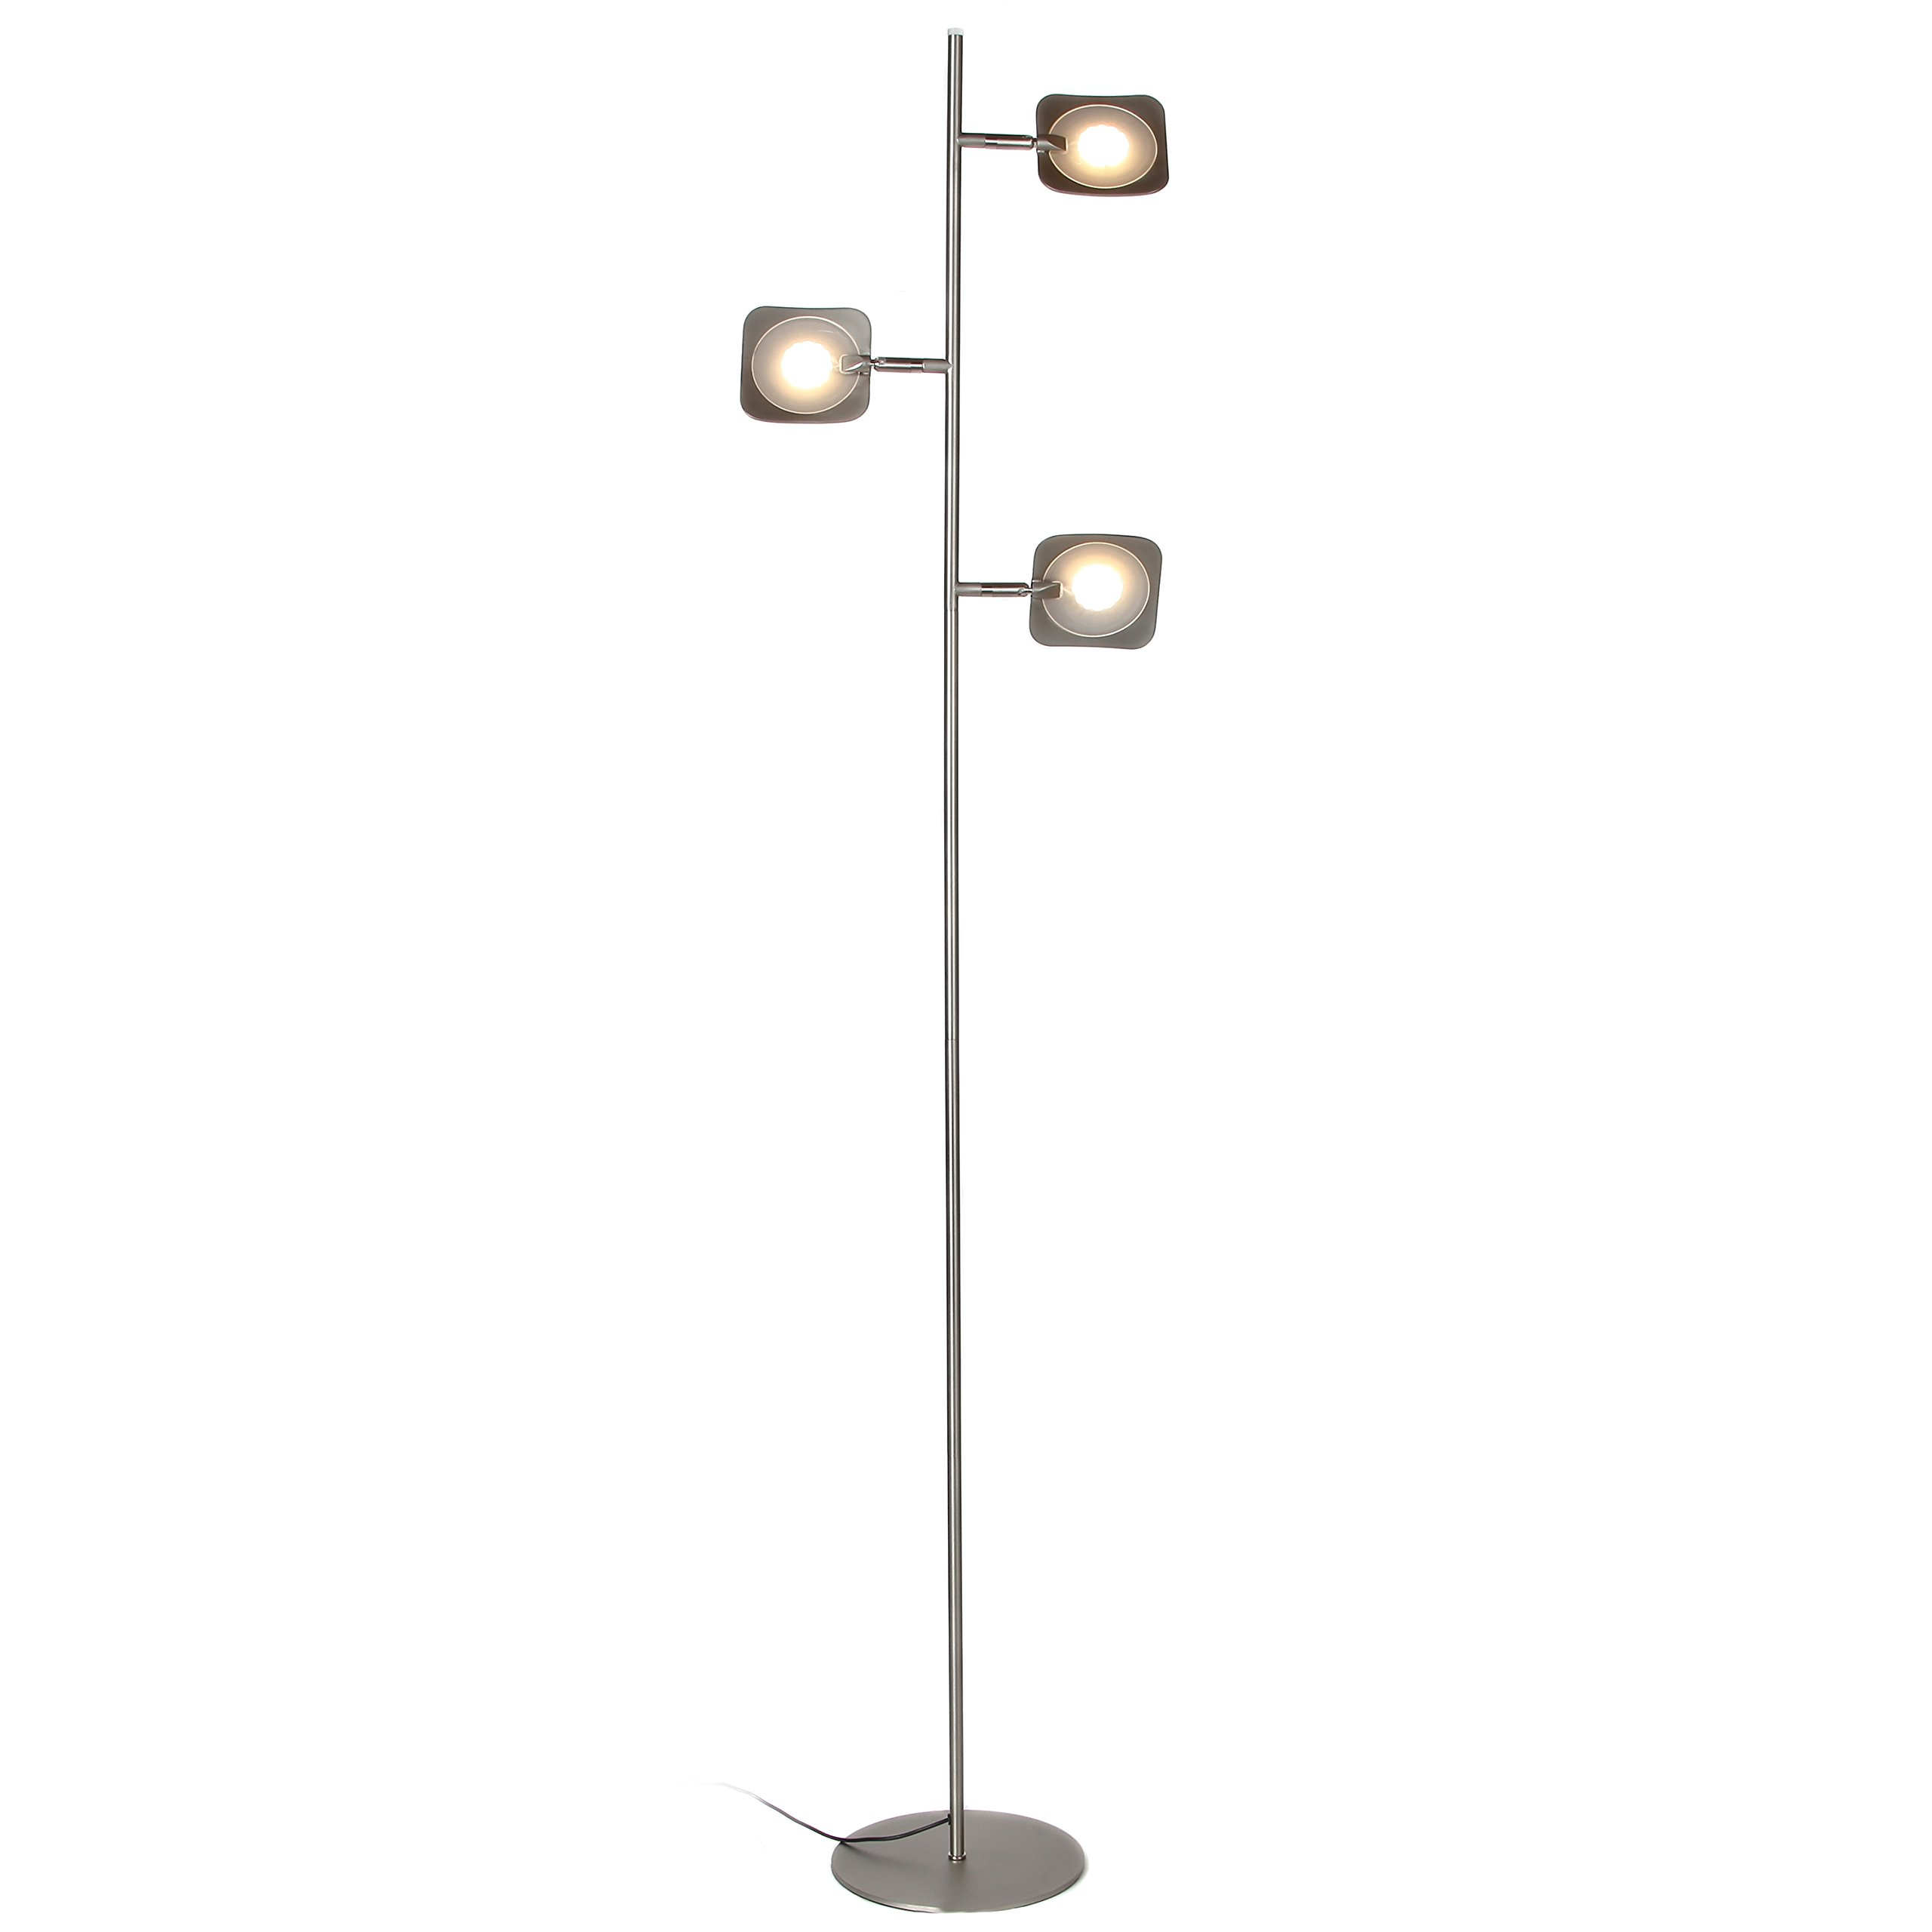 Details About Brightech Tree Led Floor Lamp Classic Adjustable 3 Light Floor Lamp With